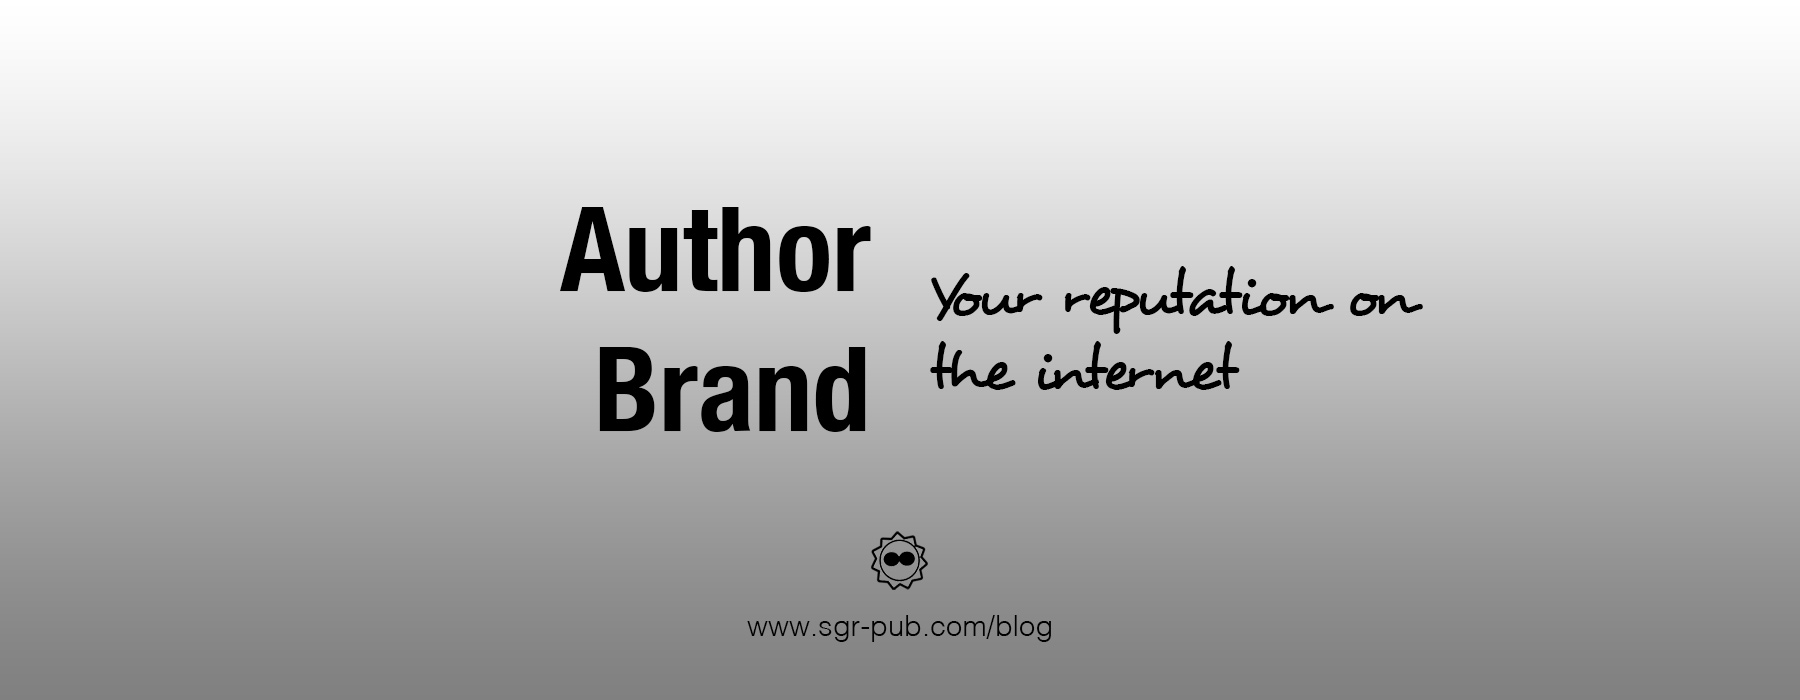 Author brand: Your reputation on the internet